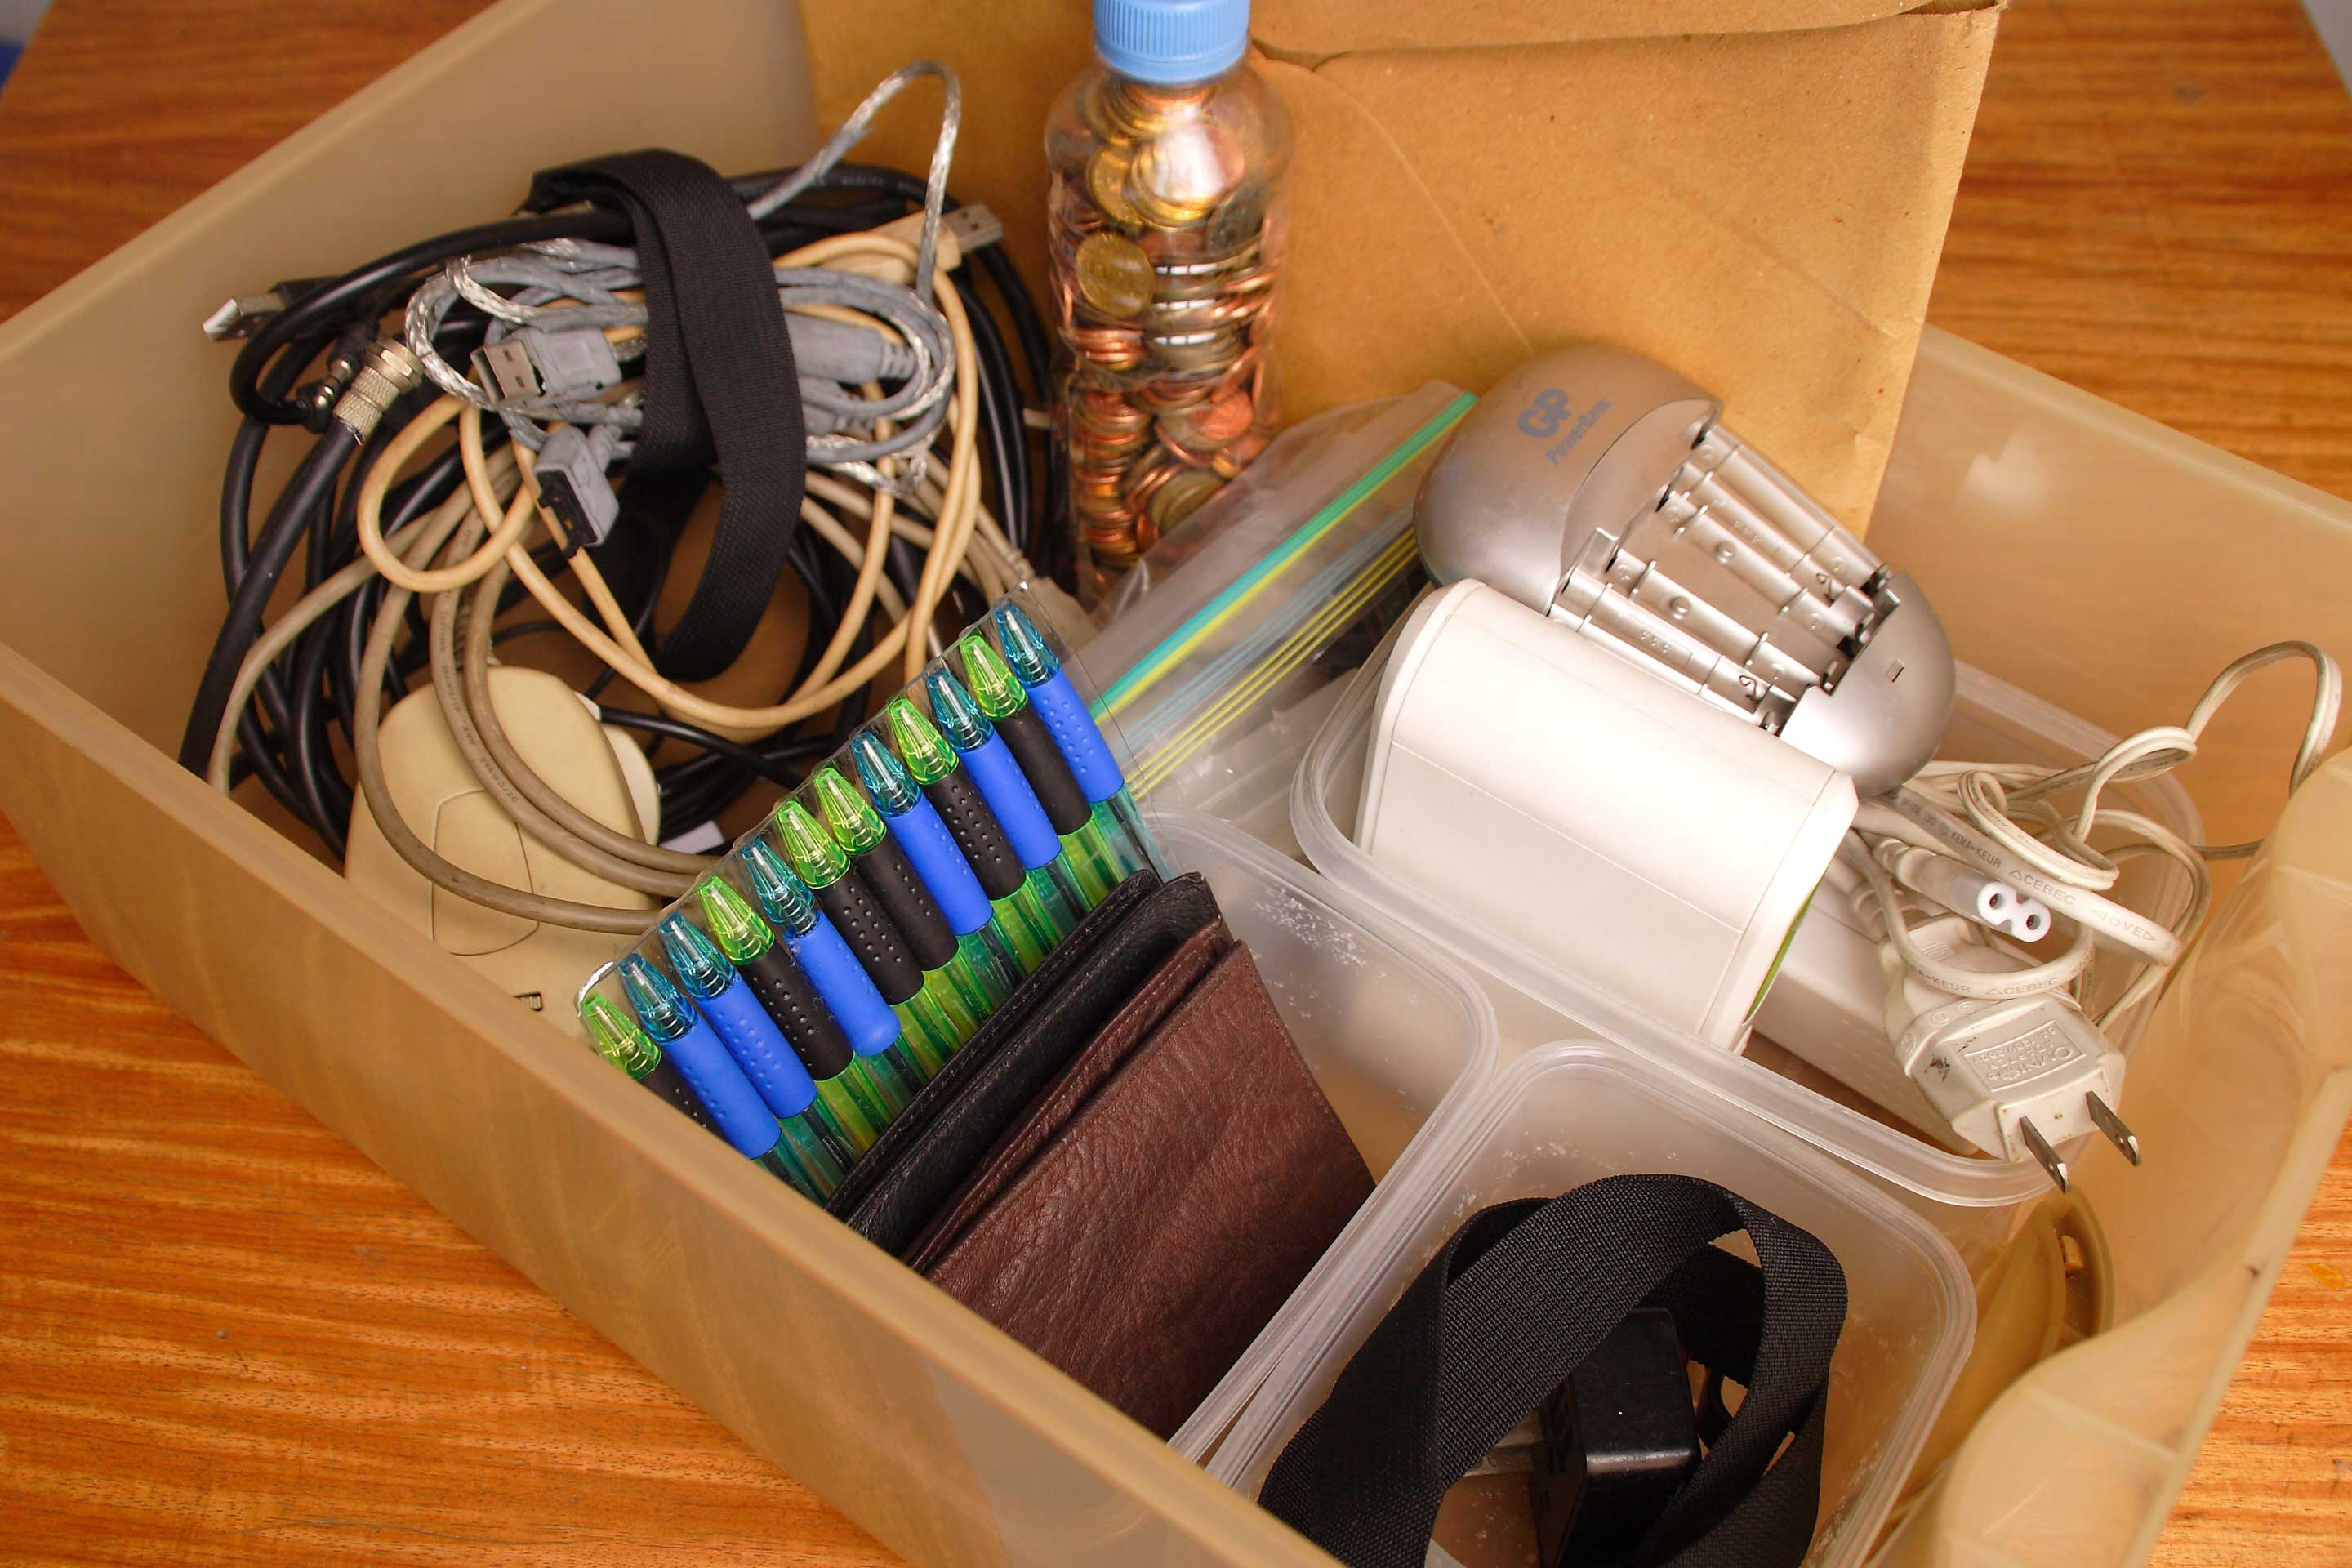 How to Organize Your Junk Drawer: 9 Steps (with Pictures)